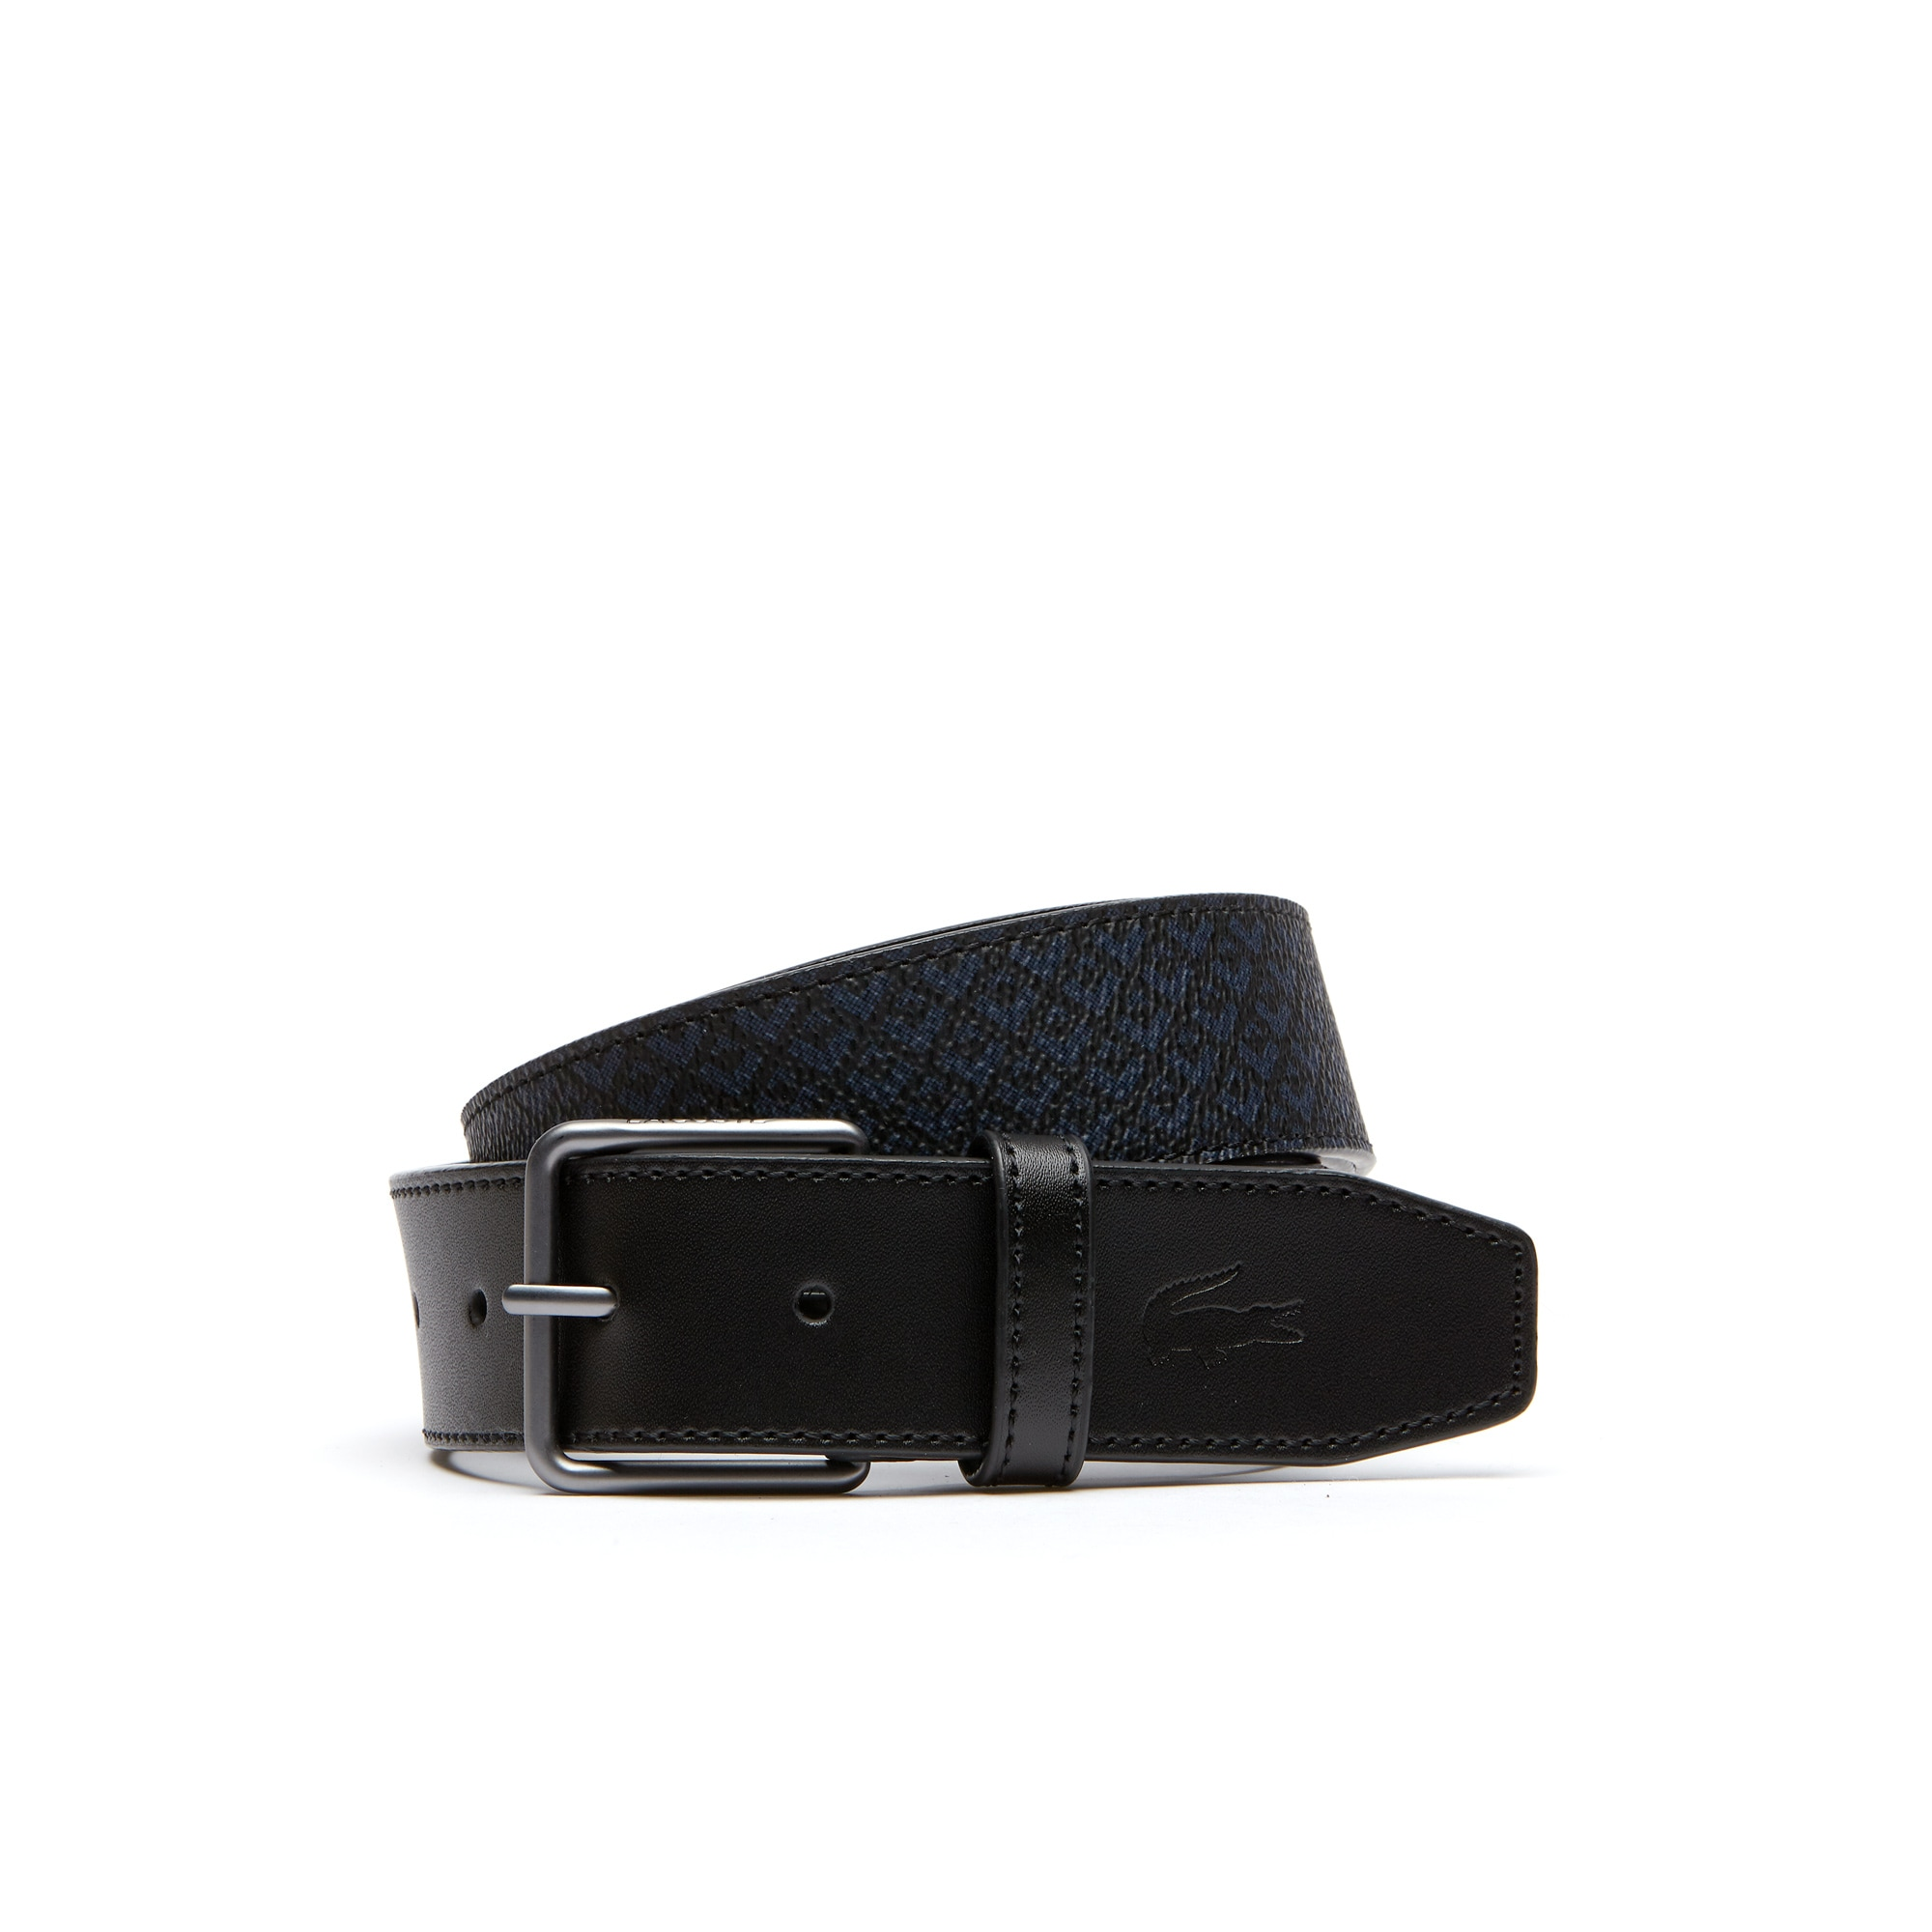 Edward Signature silk screened belt with leather tab